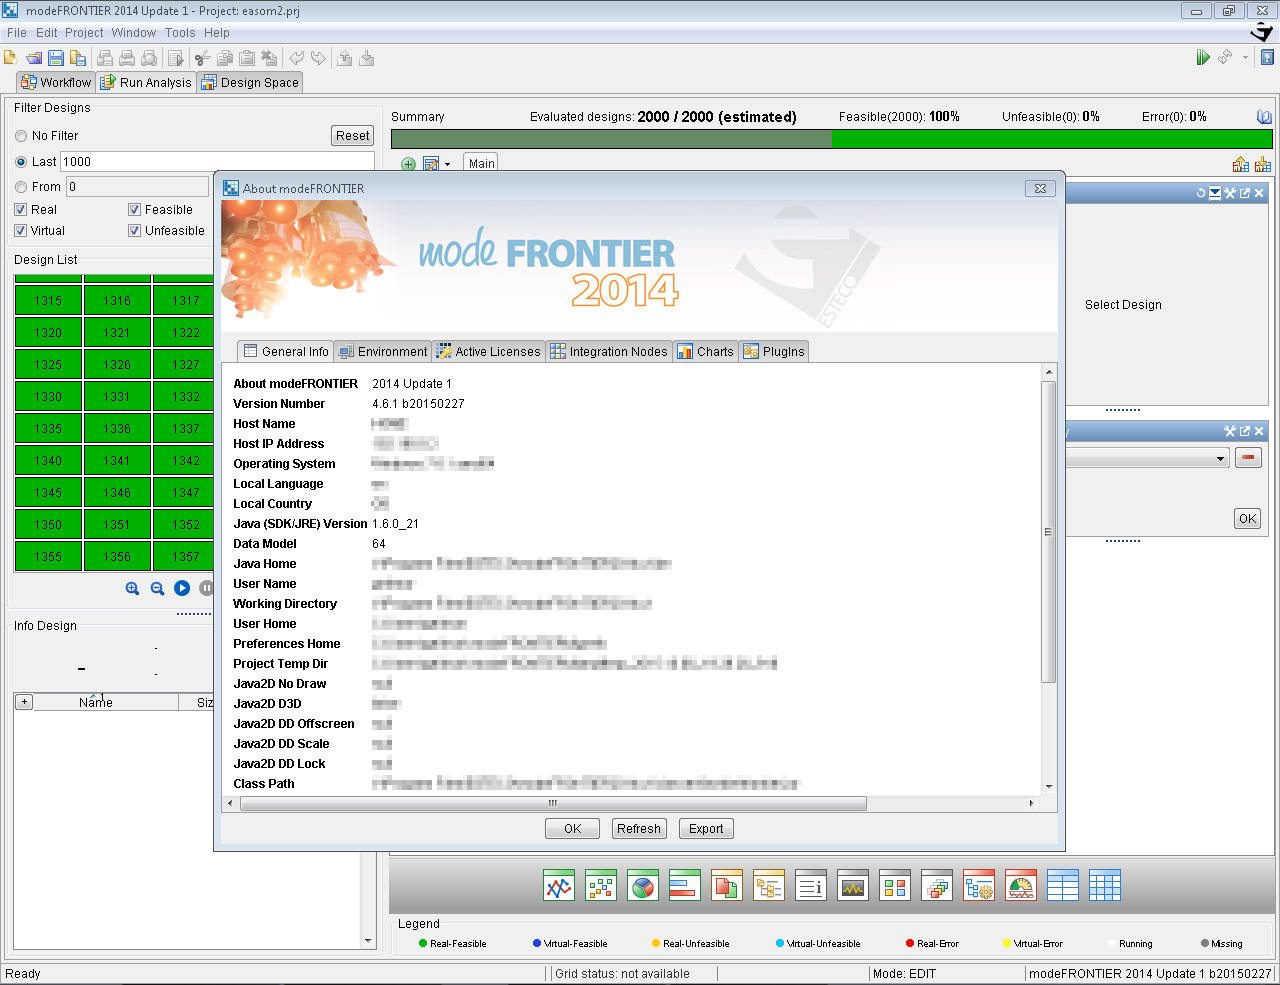 ESTECO modeFRONTIER 2014.1 version 4.6